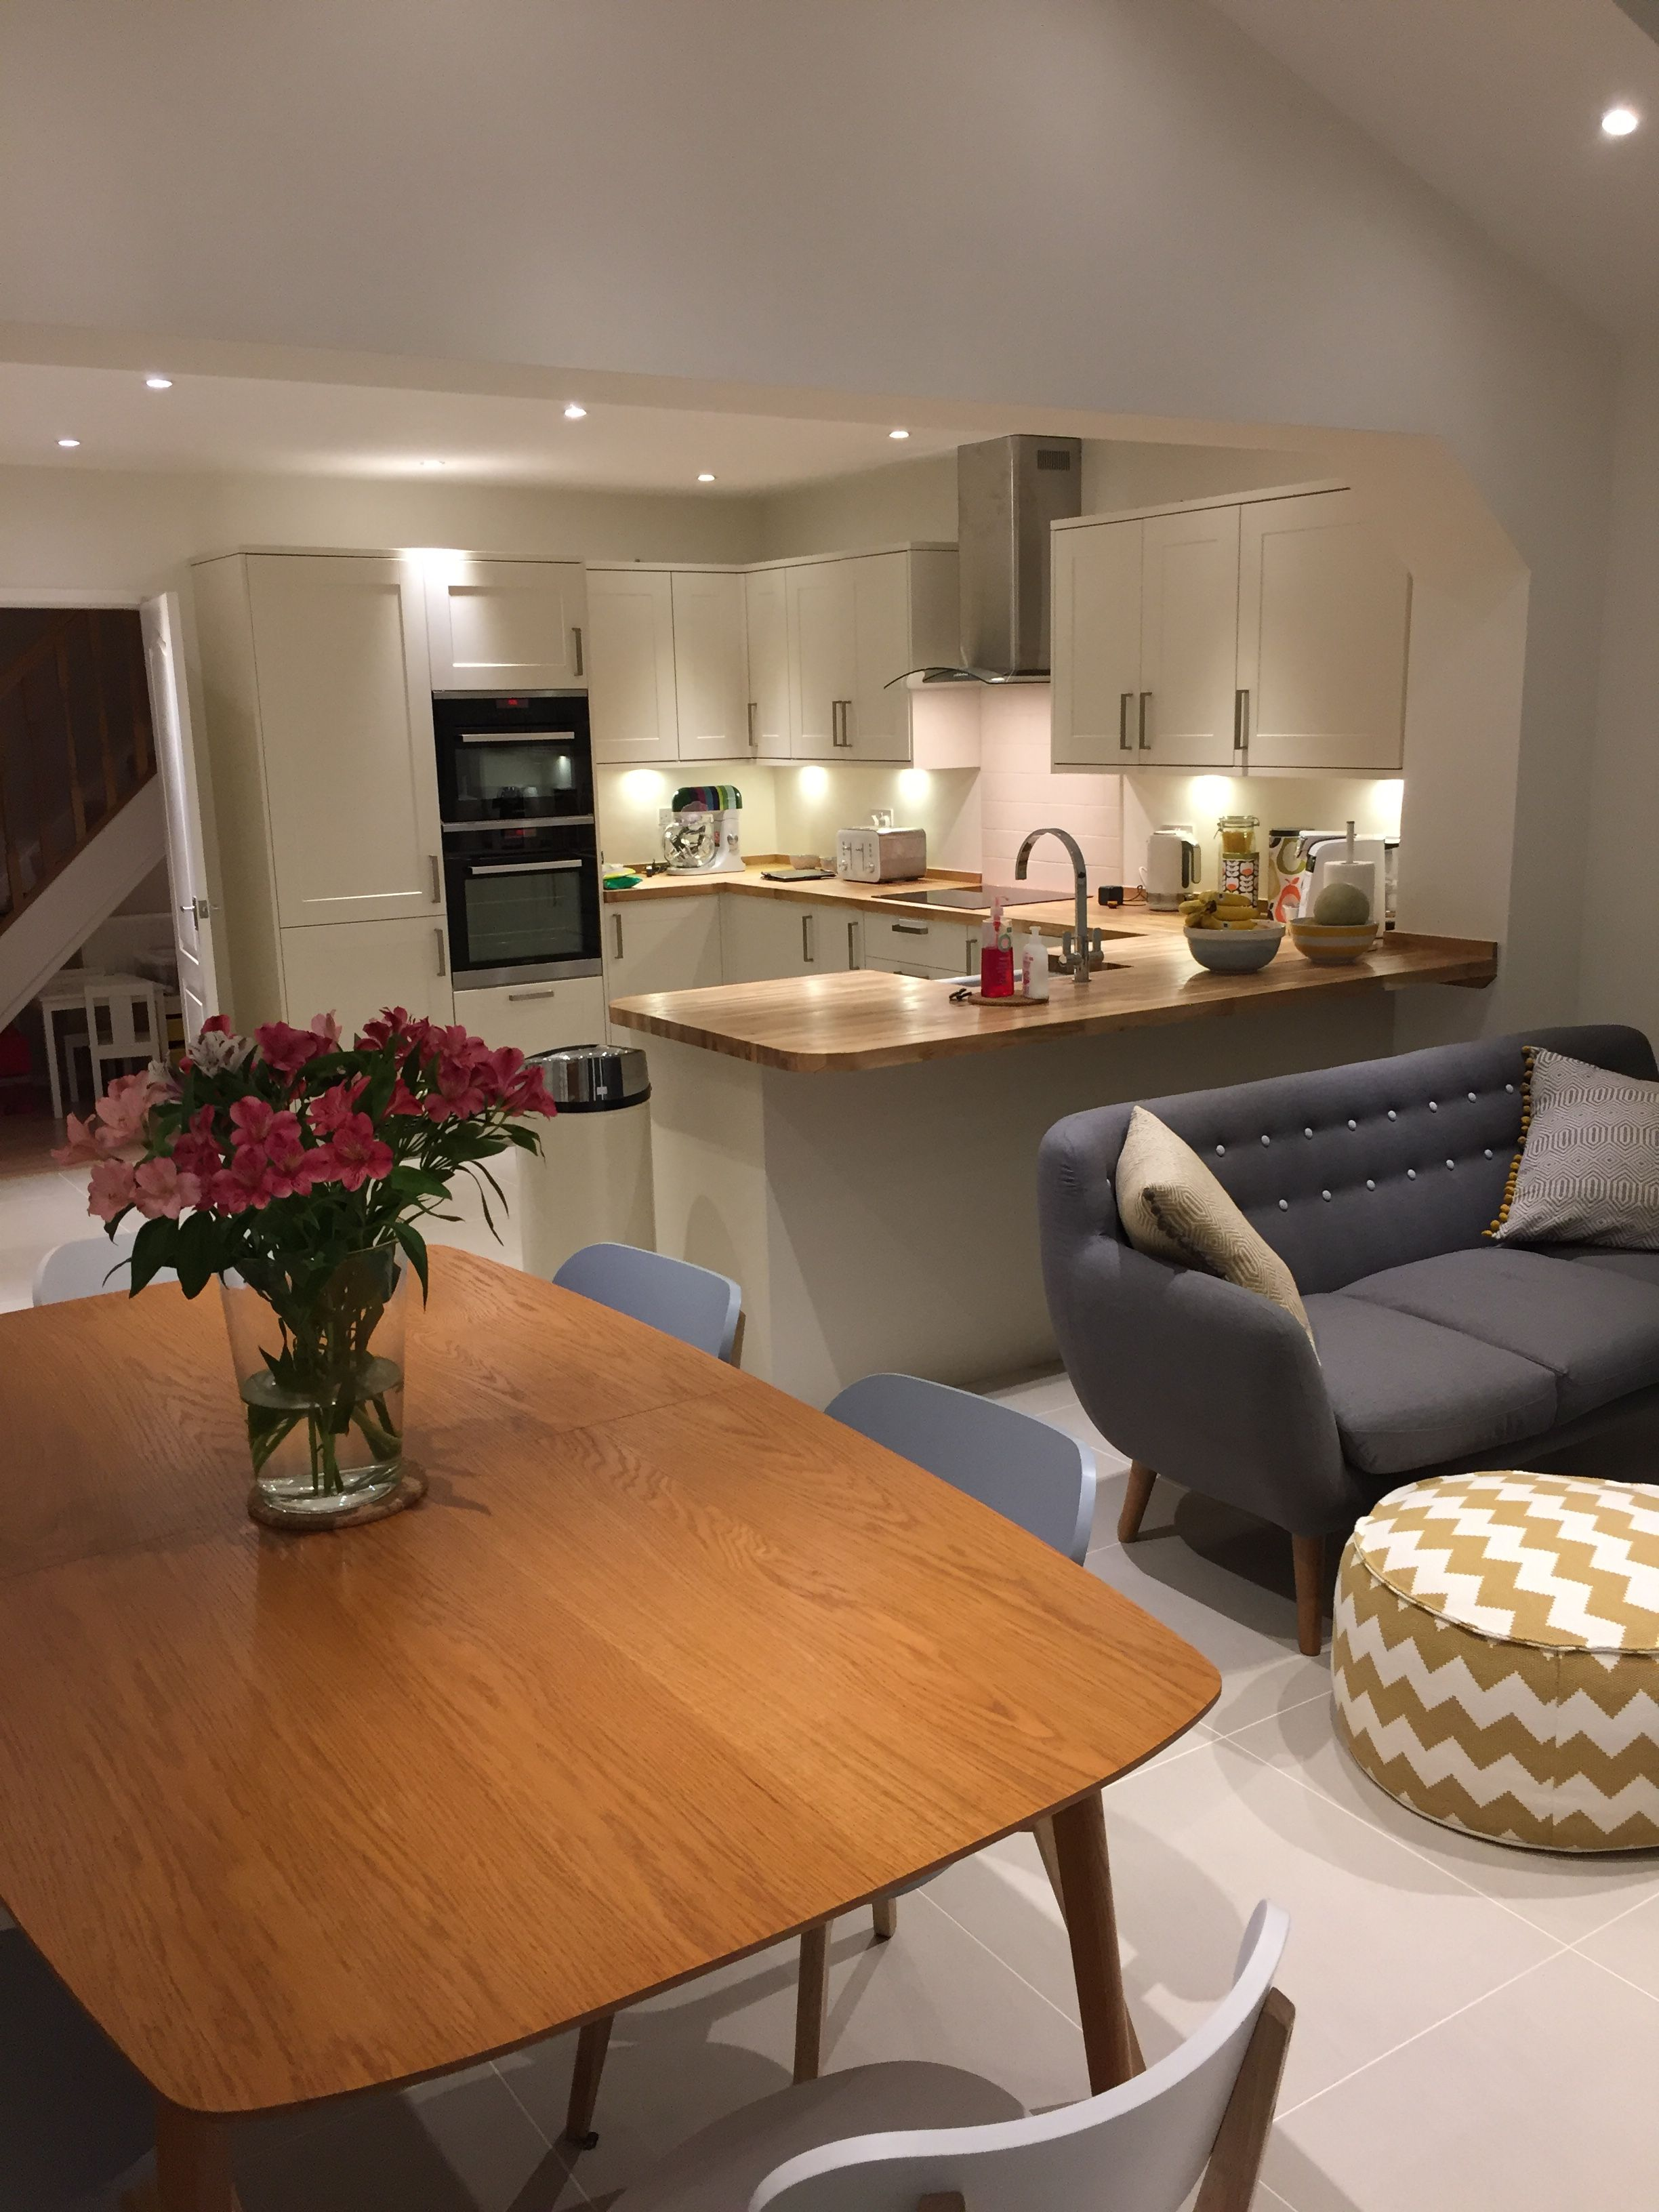 My Open Plan Kitchen Dining And Family Area Open Plan Kitchen Living Room Open Plan Kitchen Diner Open Plan Kitchen Dining Living